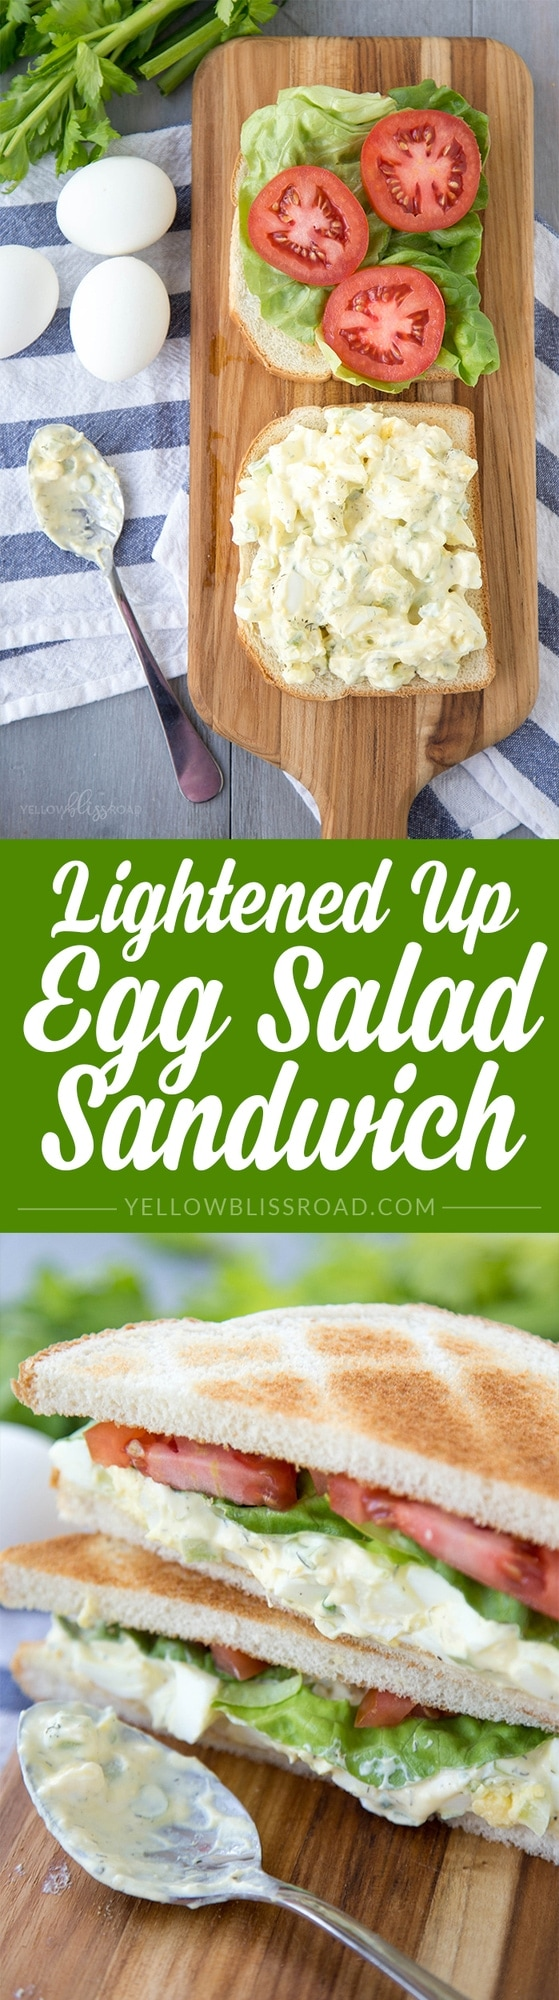 Lightened Up Egg Salad Sandwich